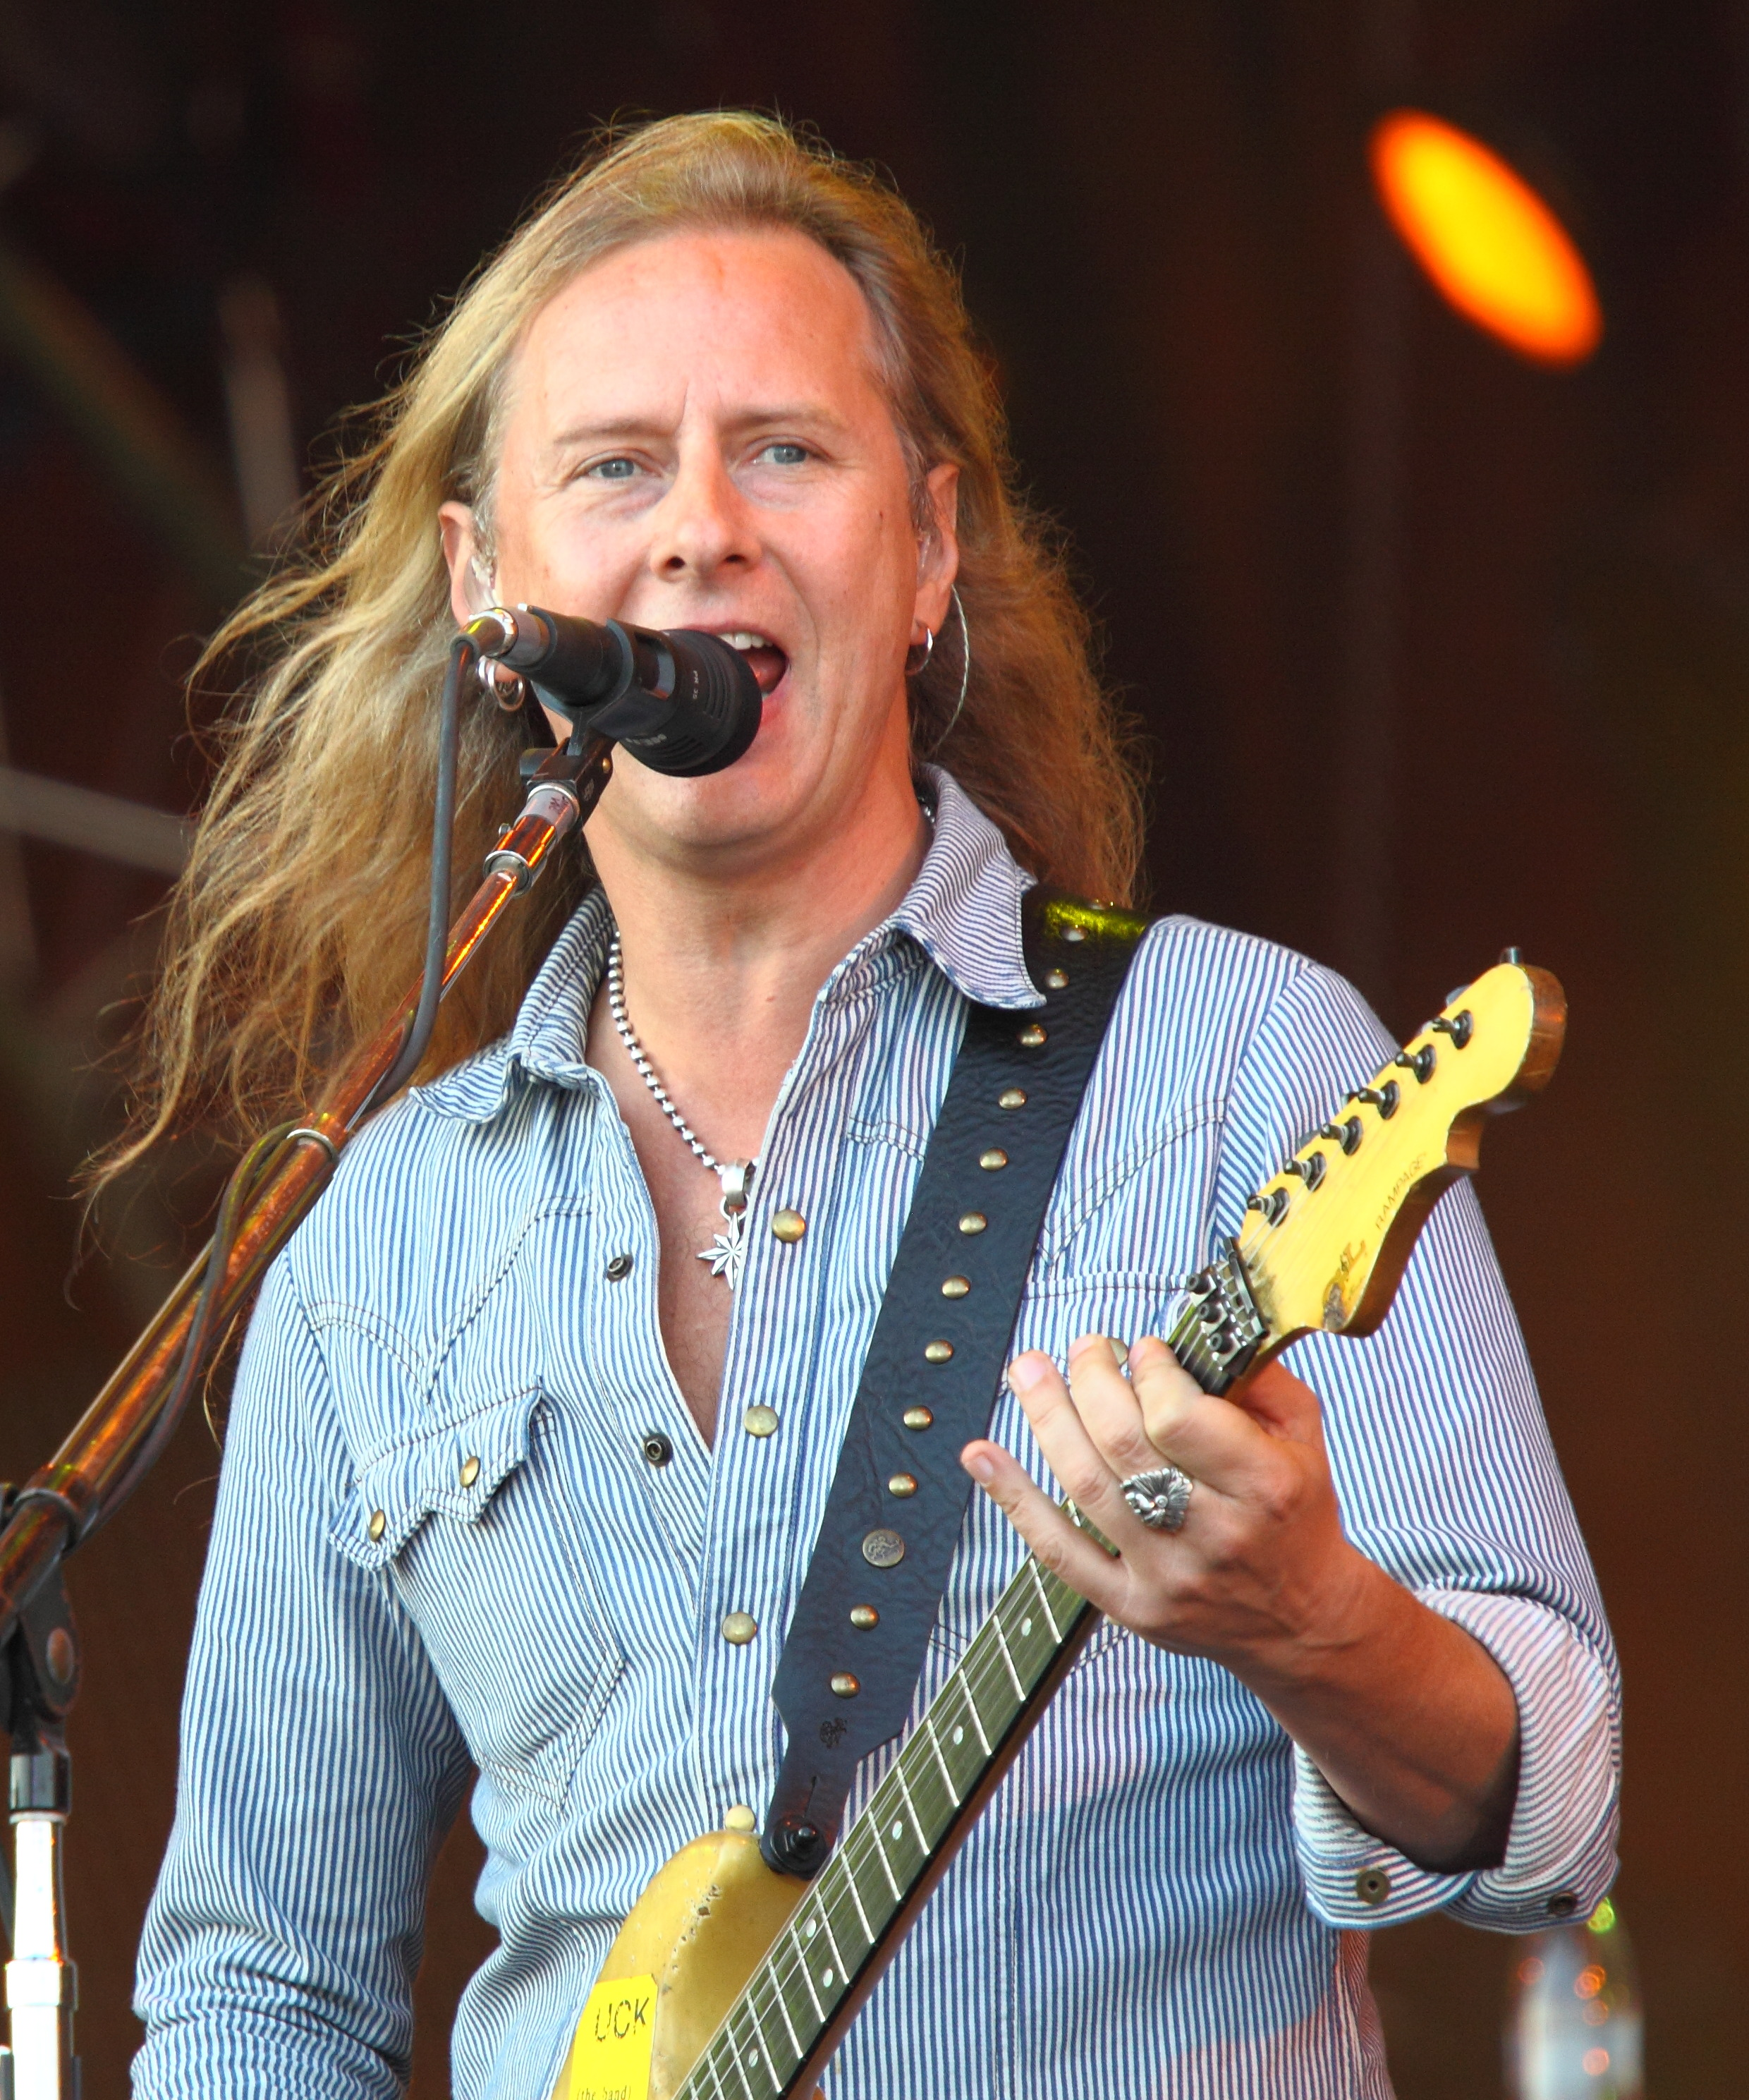 Jerry Cantrell - Wikipedia